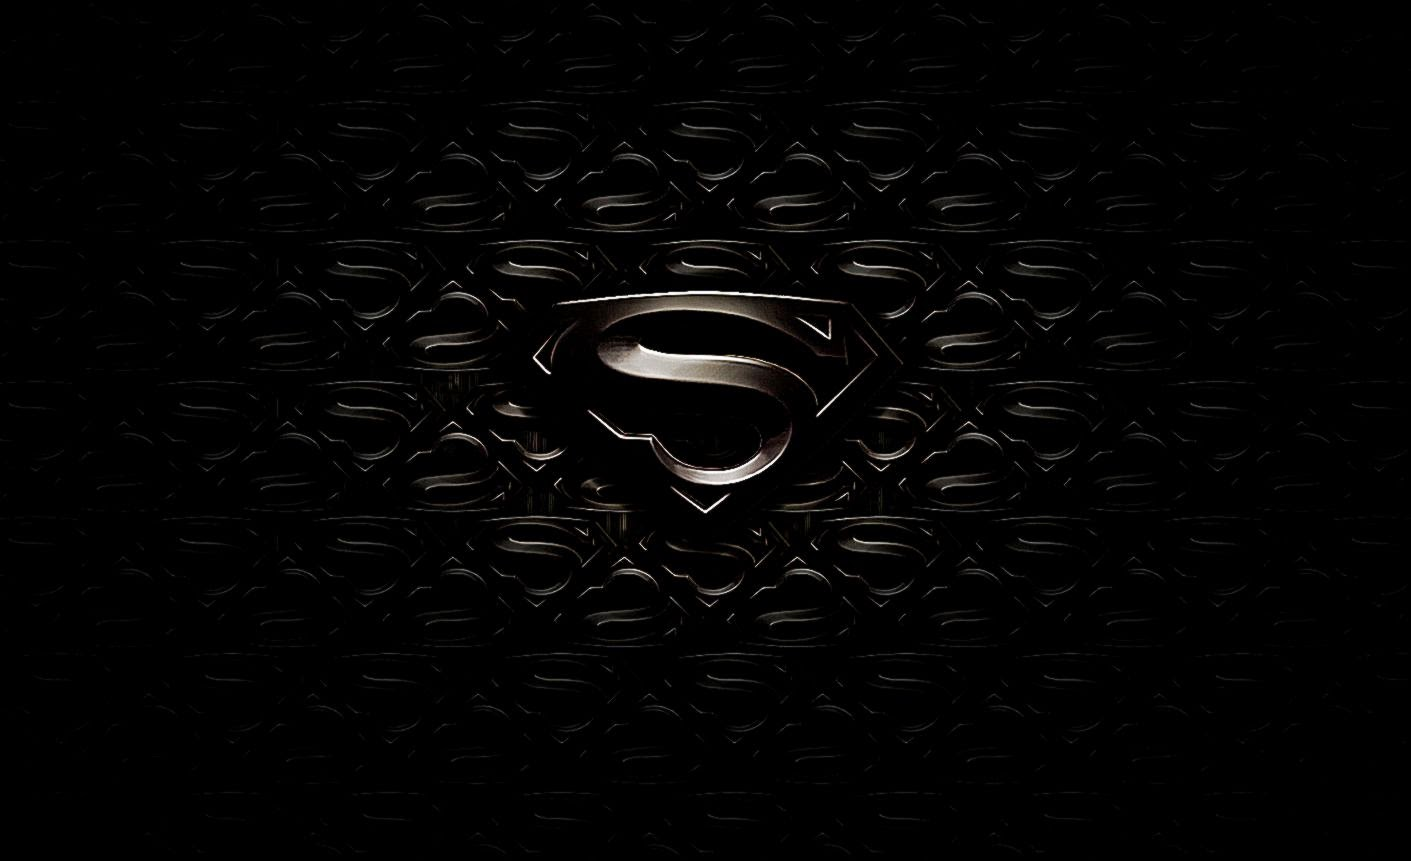 Superman Logo Black And White Wallpaper Superman Logo Black And White